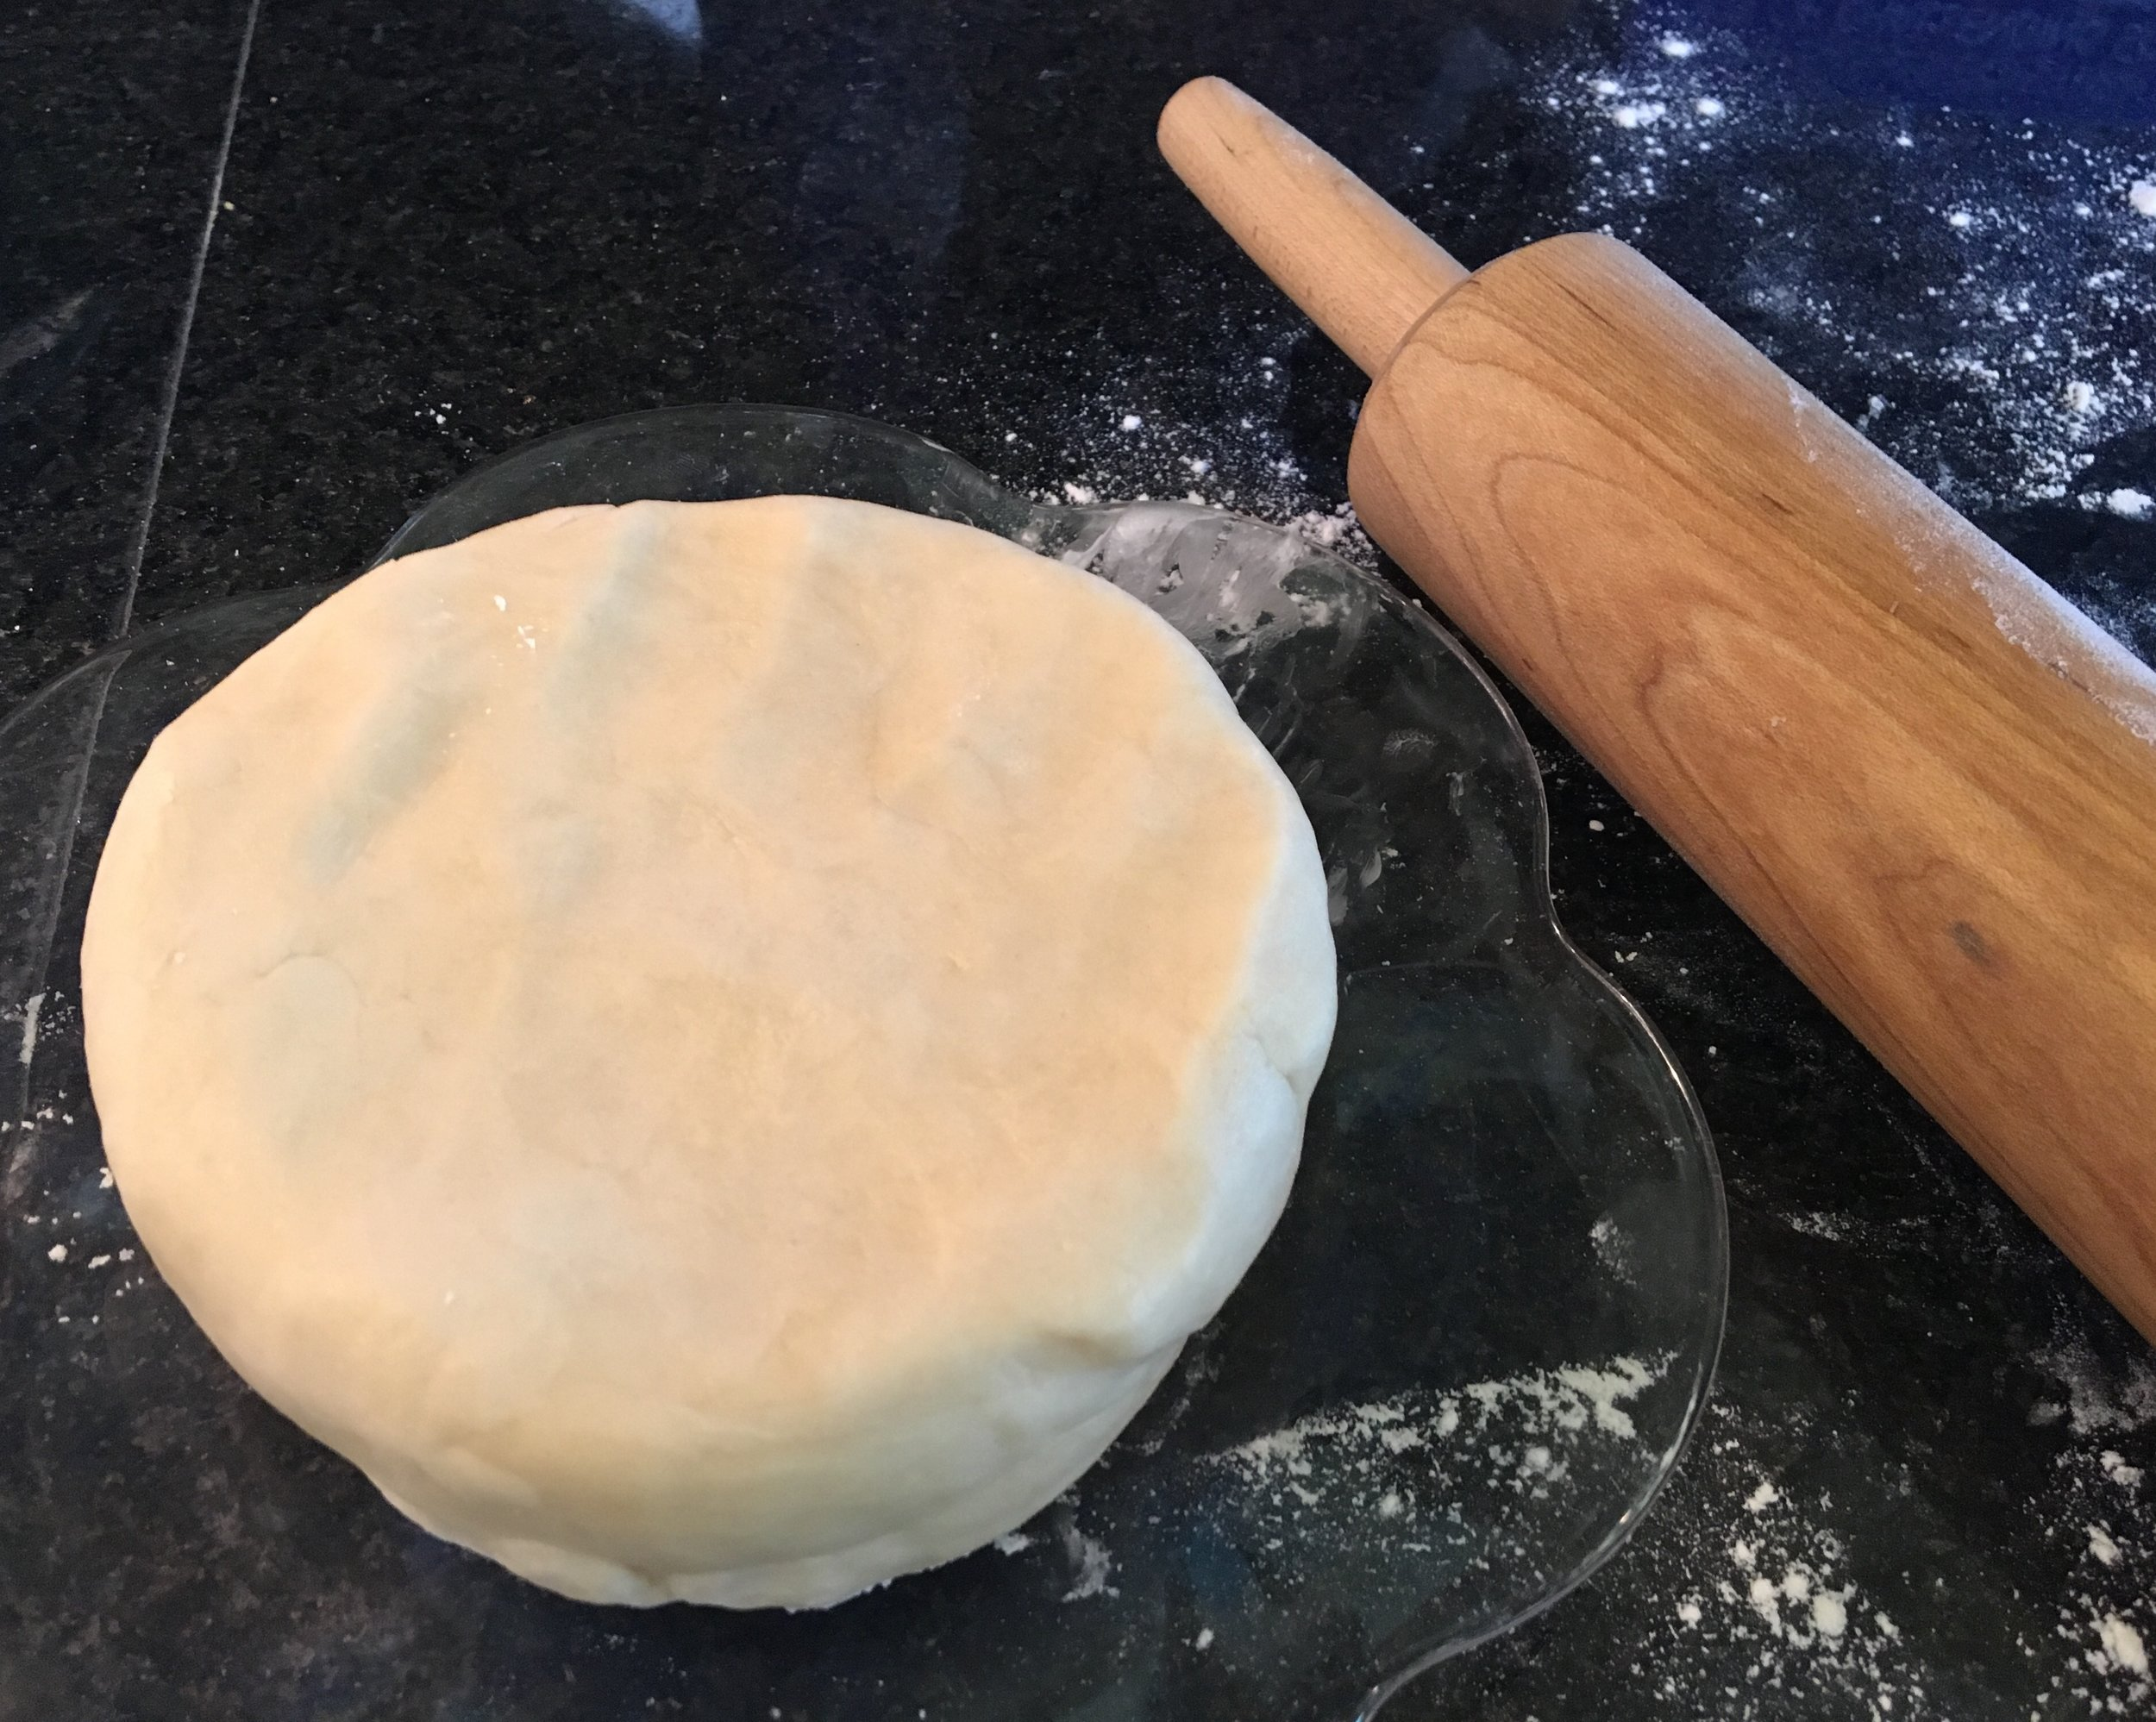 Gently and quickly work the dough to a nice satiny ball, then flatten. Wrap and chill for one hour or more before using.